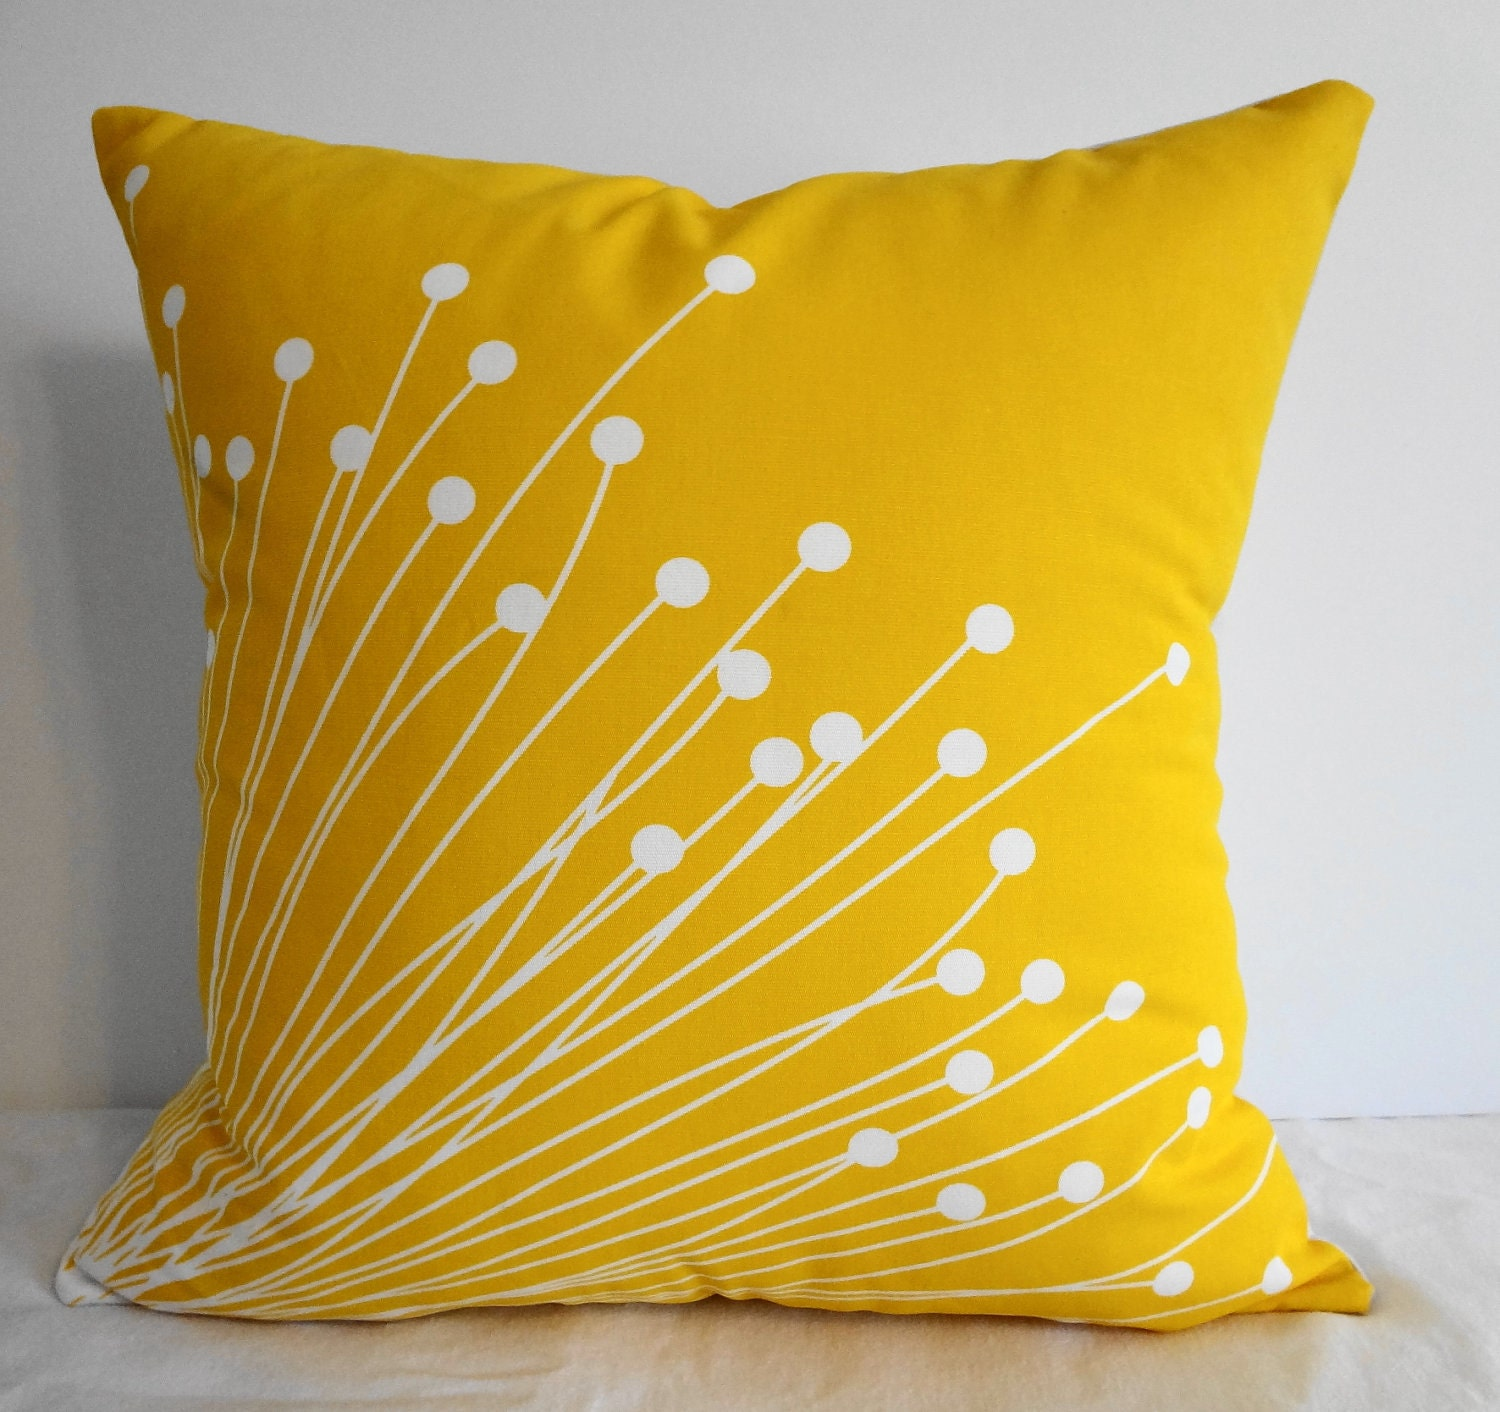 Starburst Yellow Pillow Covers Decorative Throw